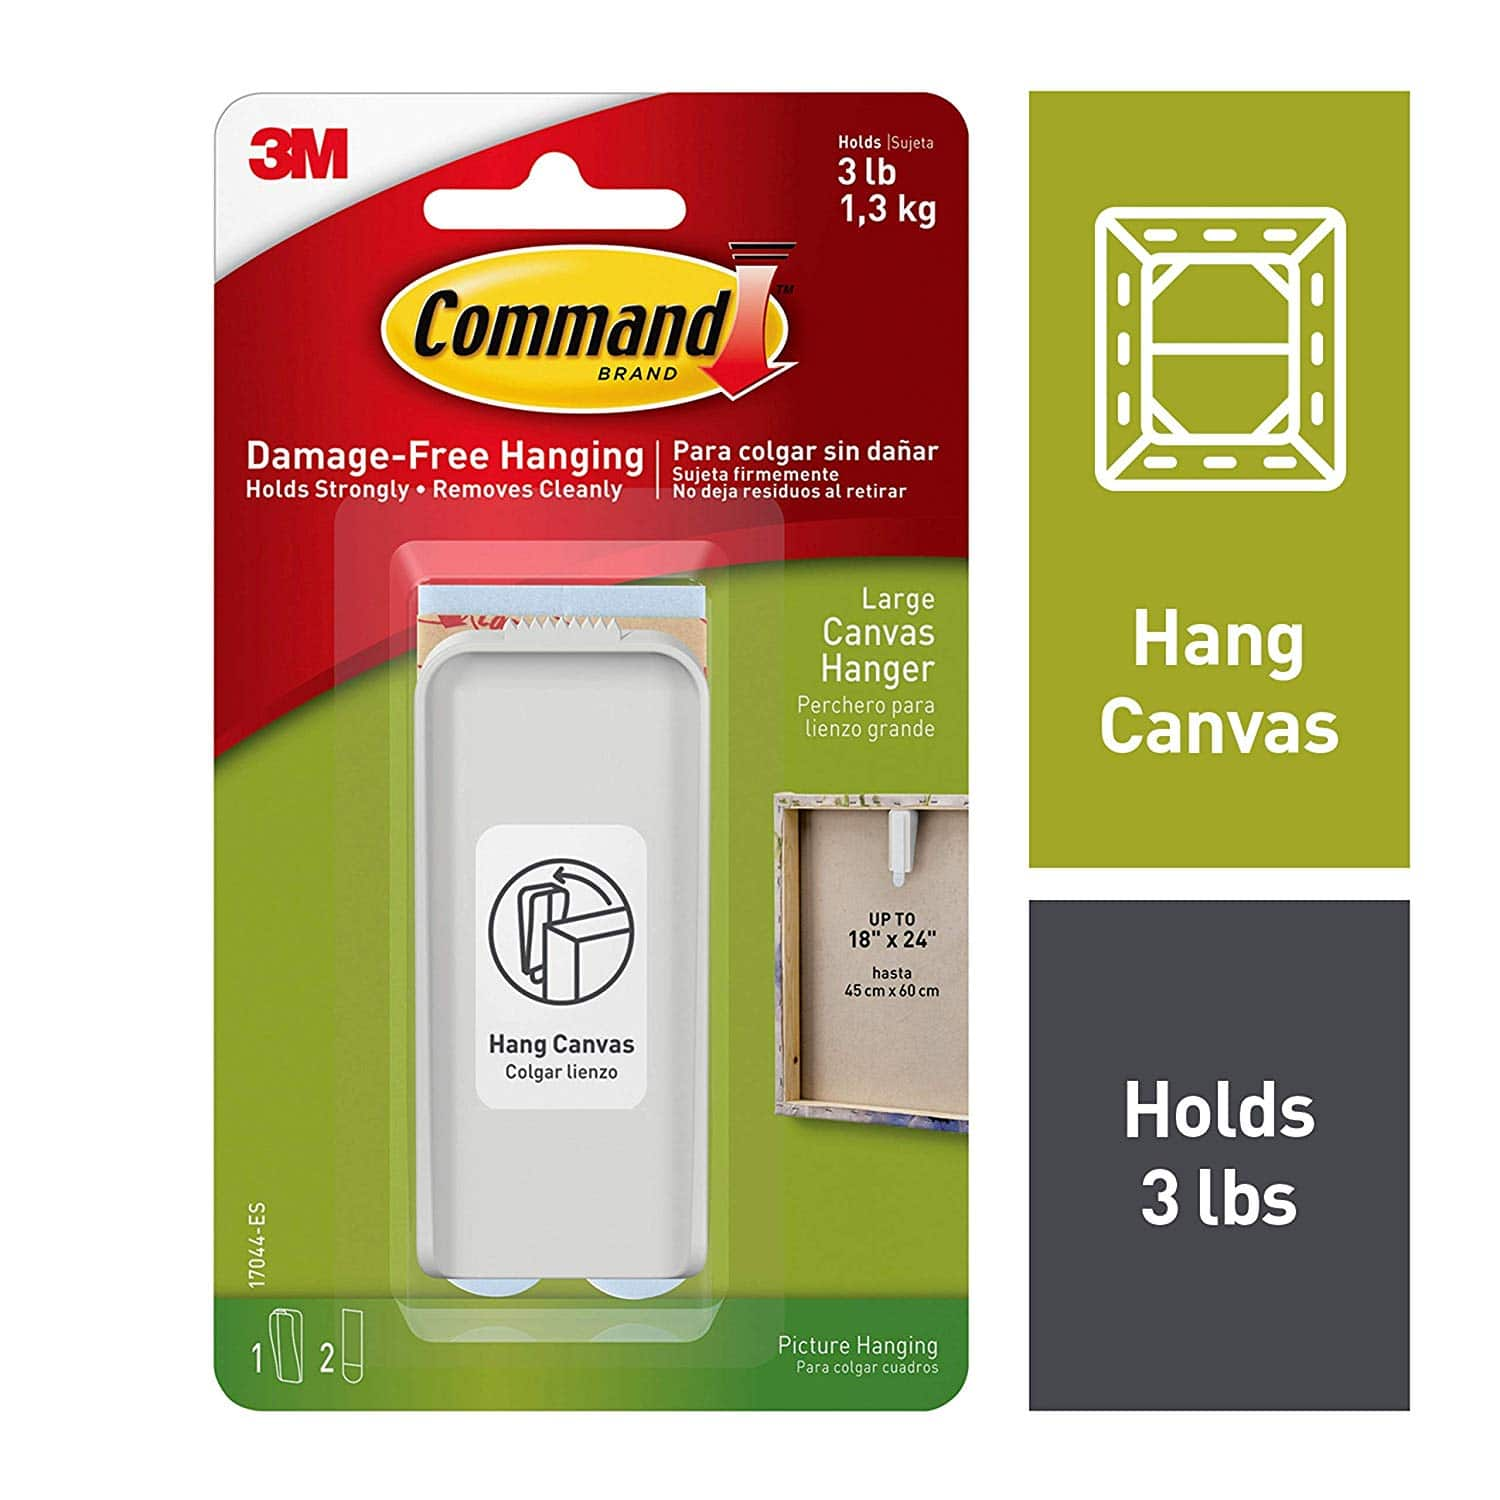 Command Large Canvas Hanger (1 Hanger + 2 Strips) $0.97 + Free Prime Shipping